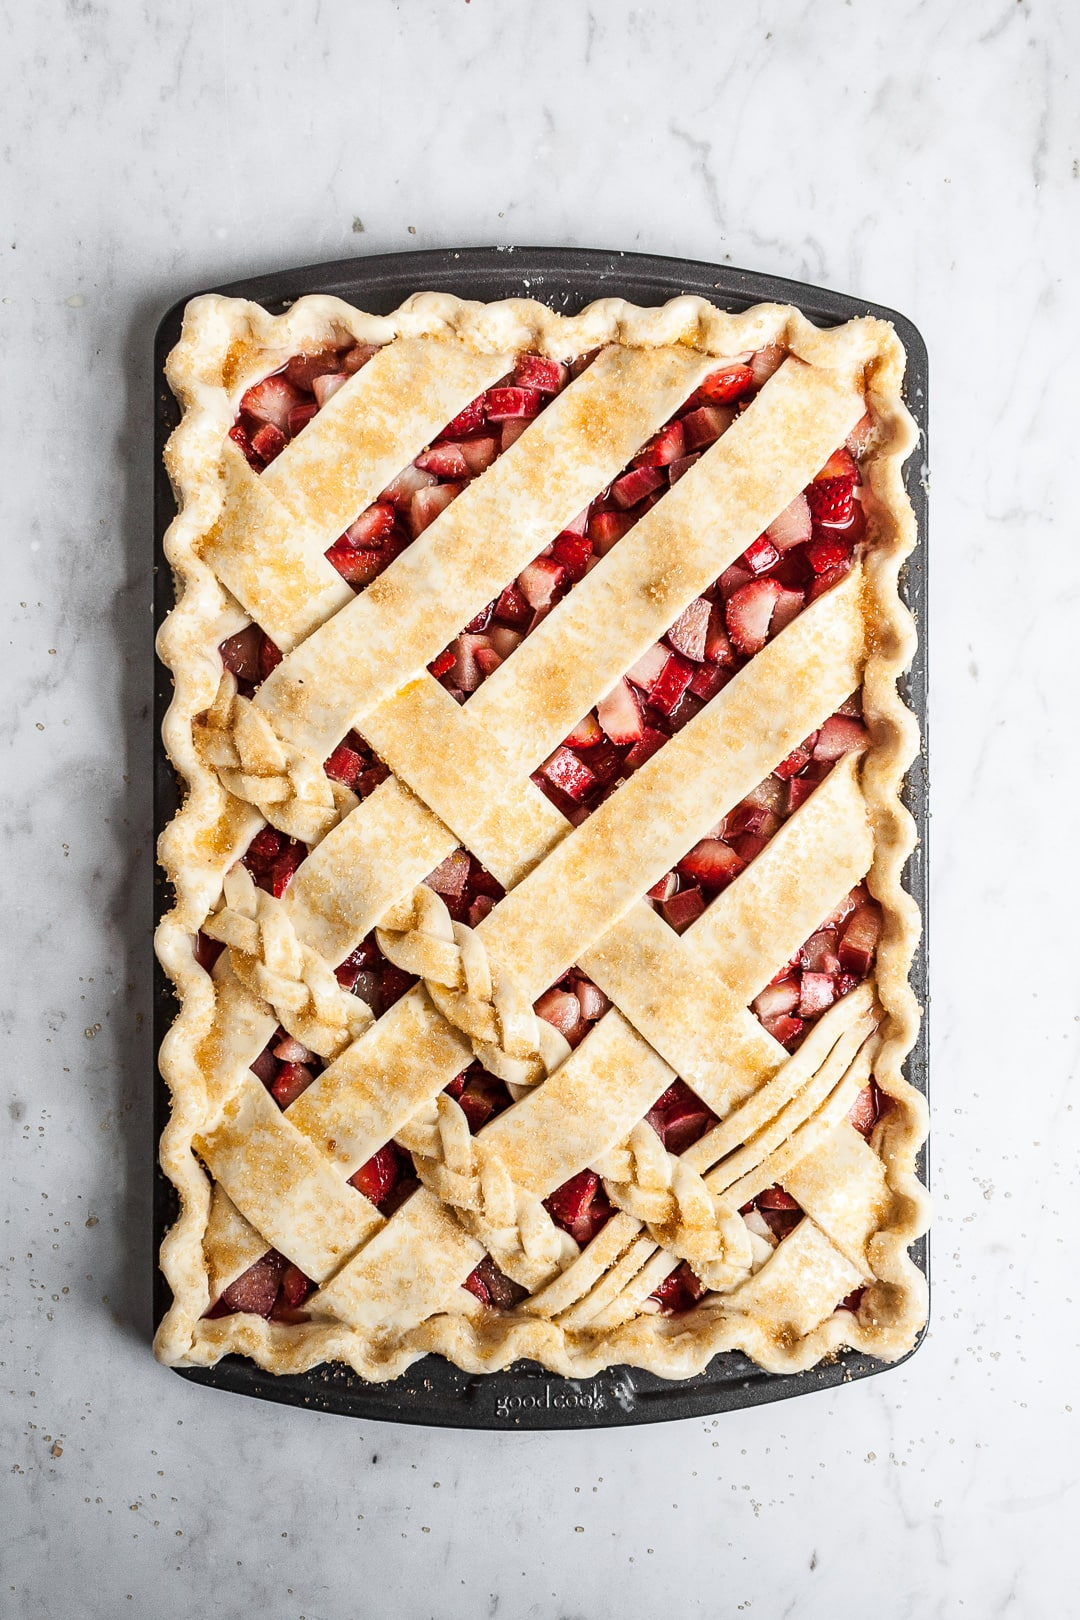 Top view of unbaked crimped lattice slab pie with strawberry rhubarb filling, sprinkled with coarse sugar, on a marble background